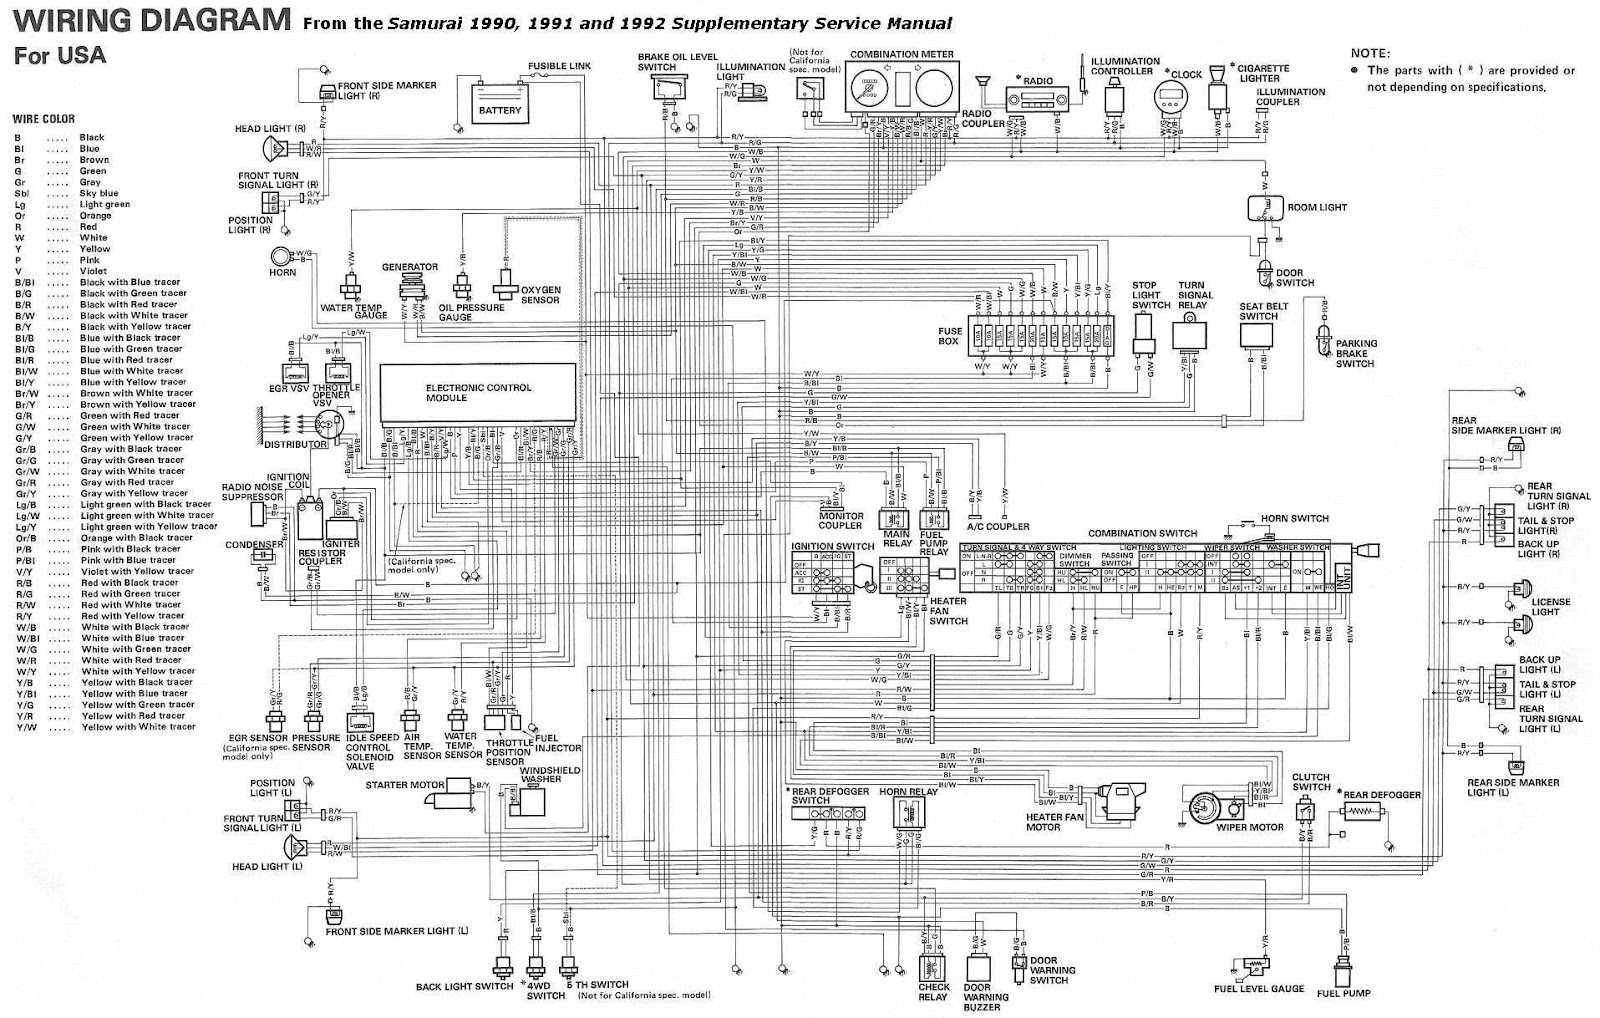 300 fuse box diagram in addition 1996 suzuki sidekick wiring diagram 2004 suzuki grand vitara wiring diagram 2008 suzuki sx4 wiring diagrams [ 1600 x 1018 Pixel ]